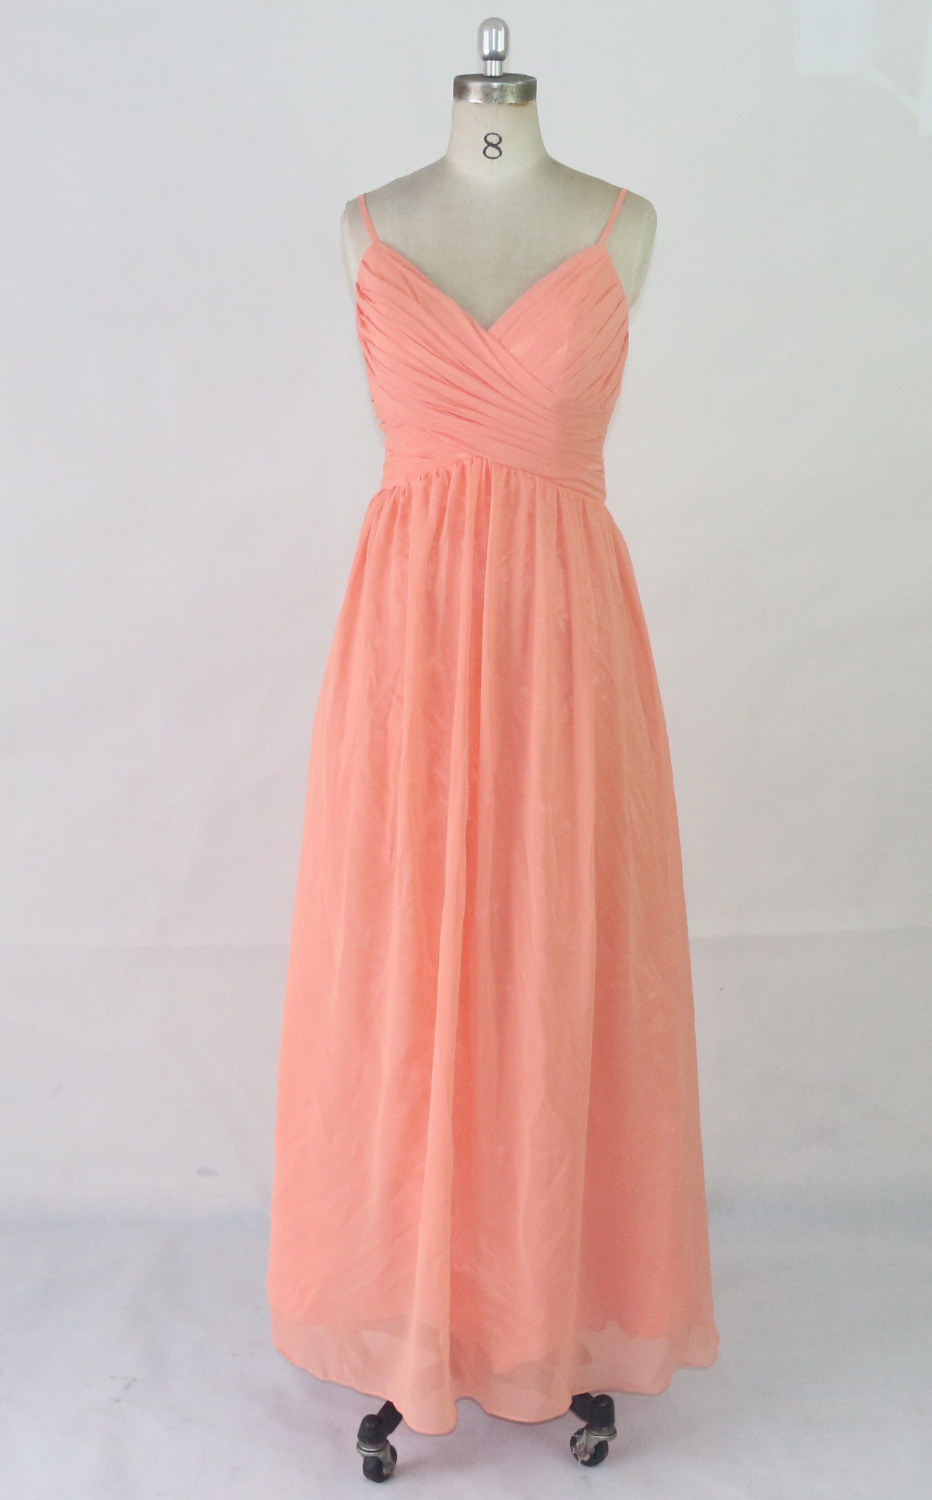 Orange bridesmaid dress sweet heart collar lace chiffon fabric Factory  Outlet low cost wholesale prom dress